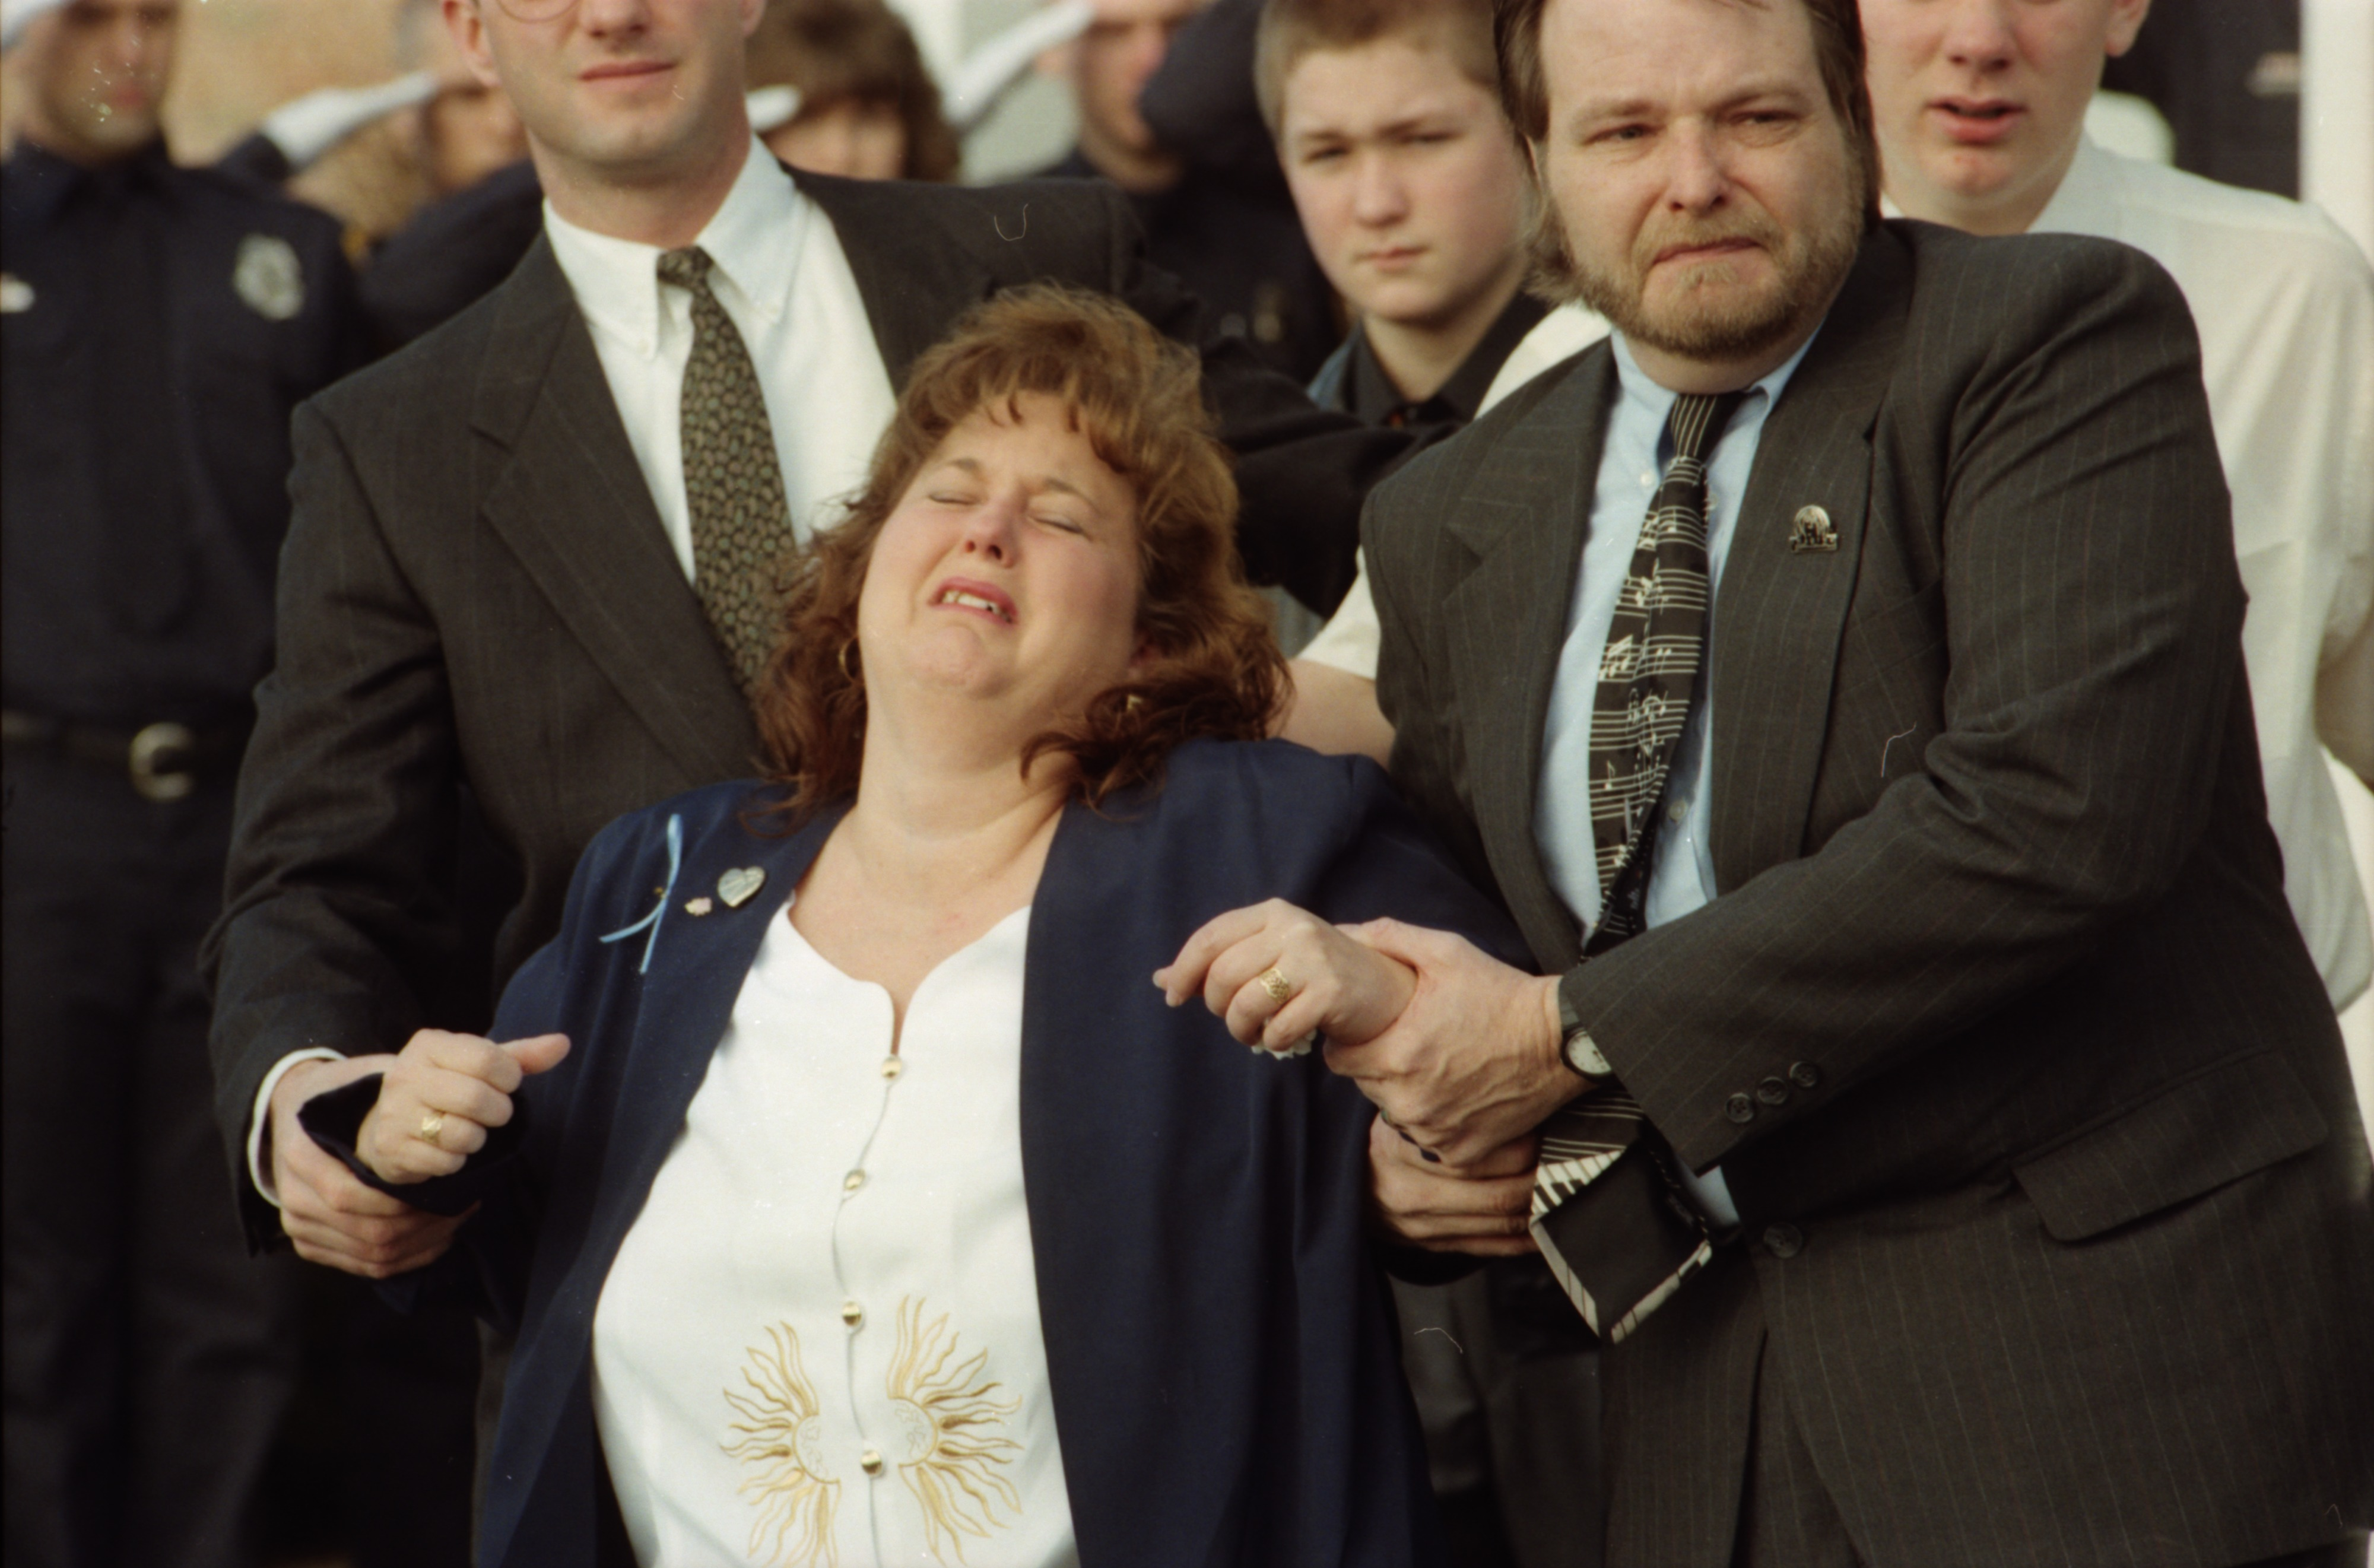 Connie Sampson Mourns her sister Tammy Sperle at her funeral in Saline, February 1996 image